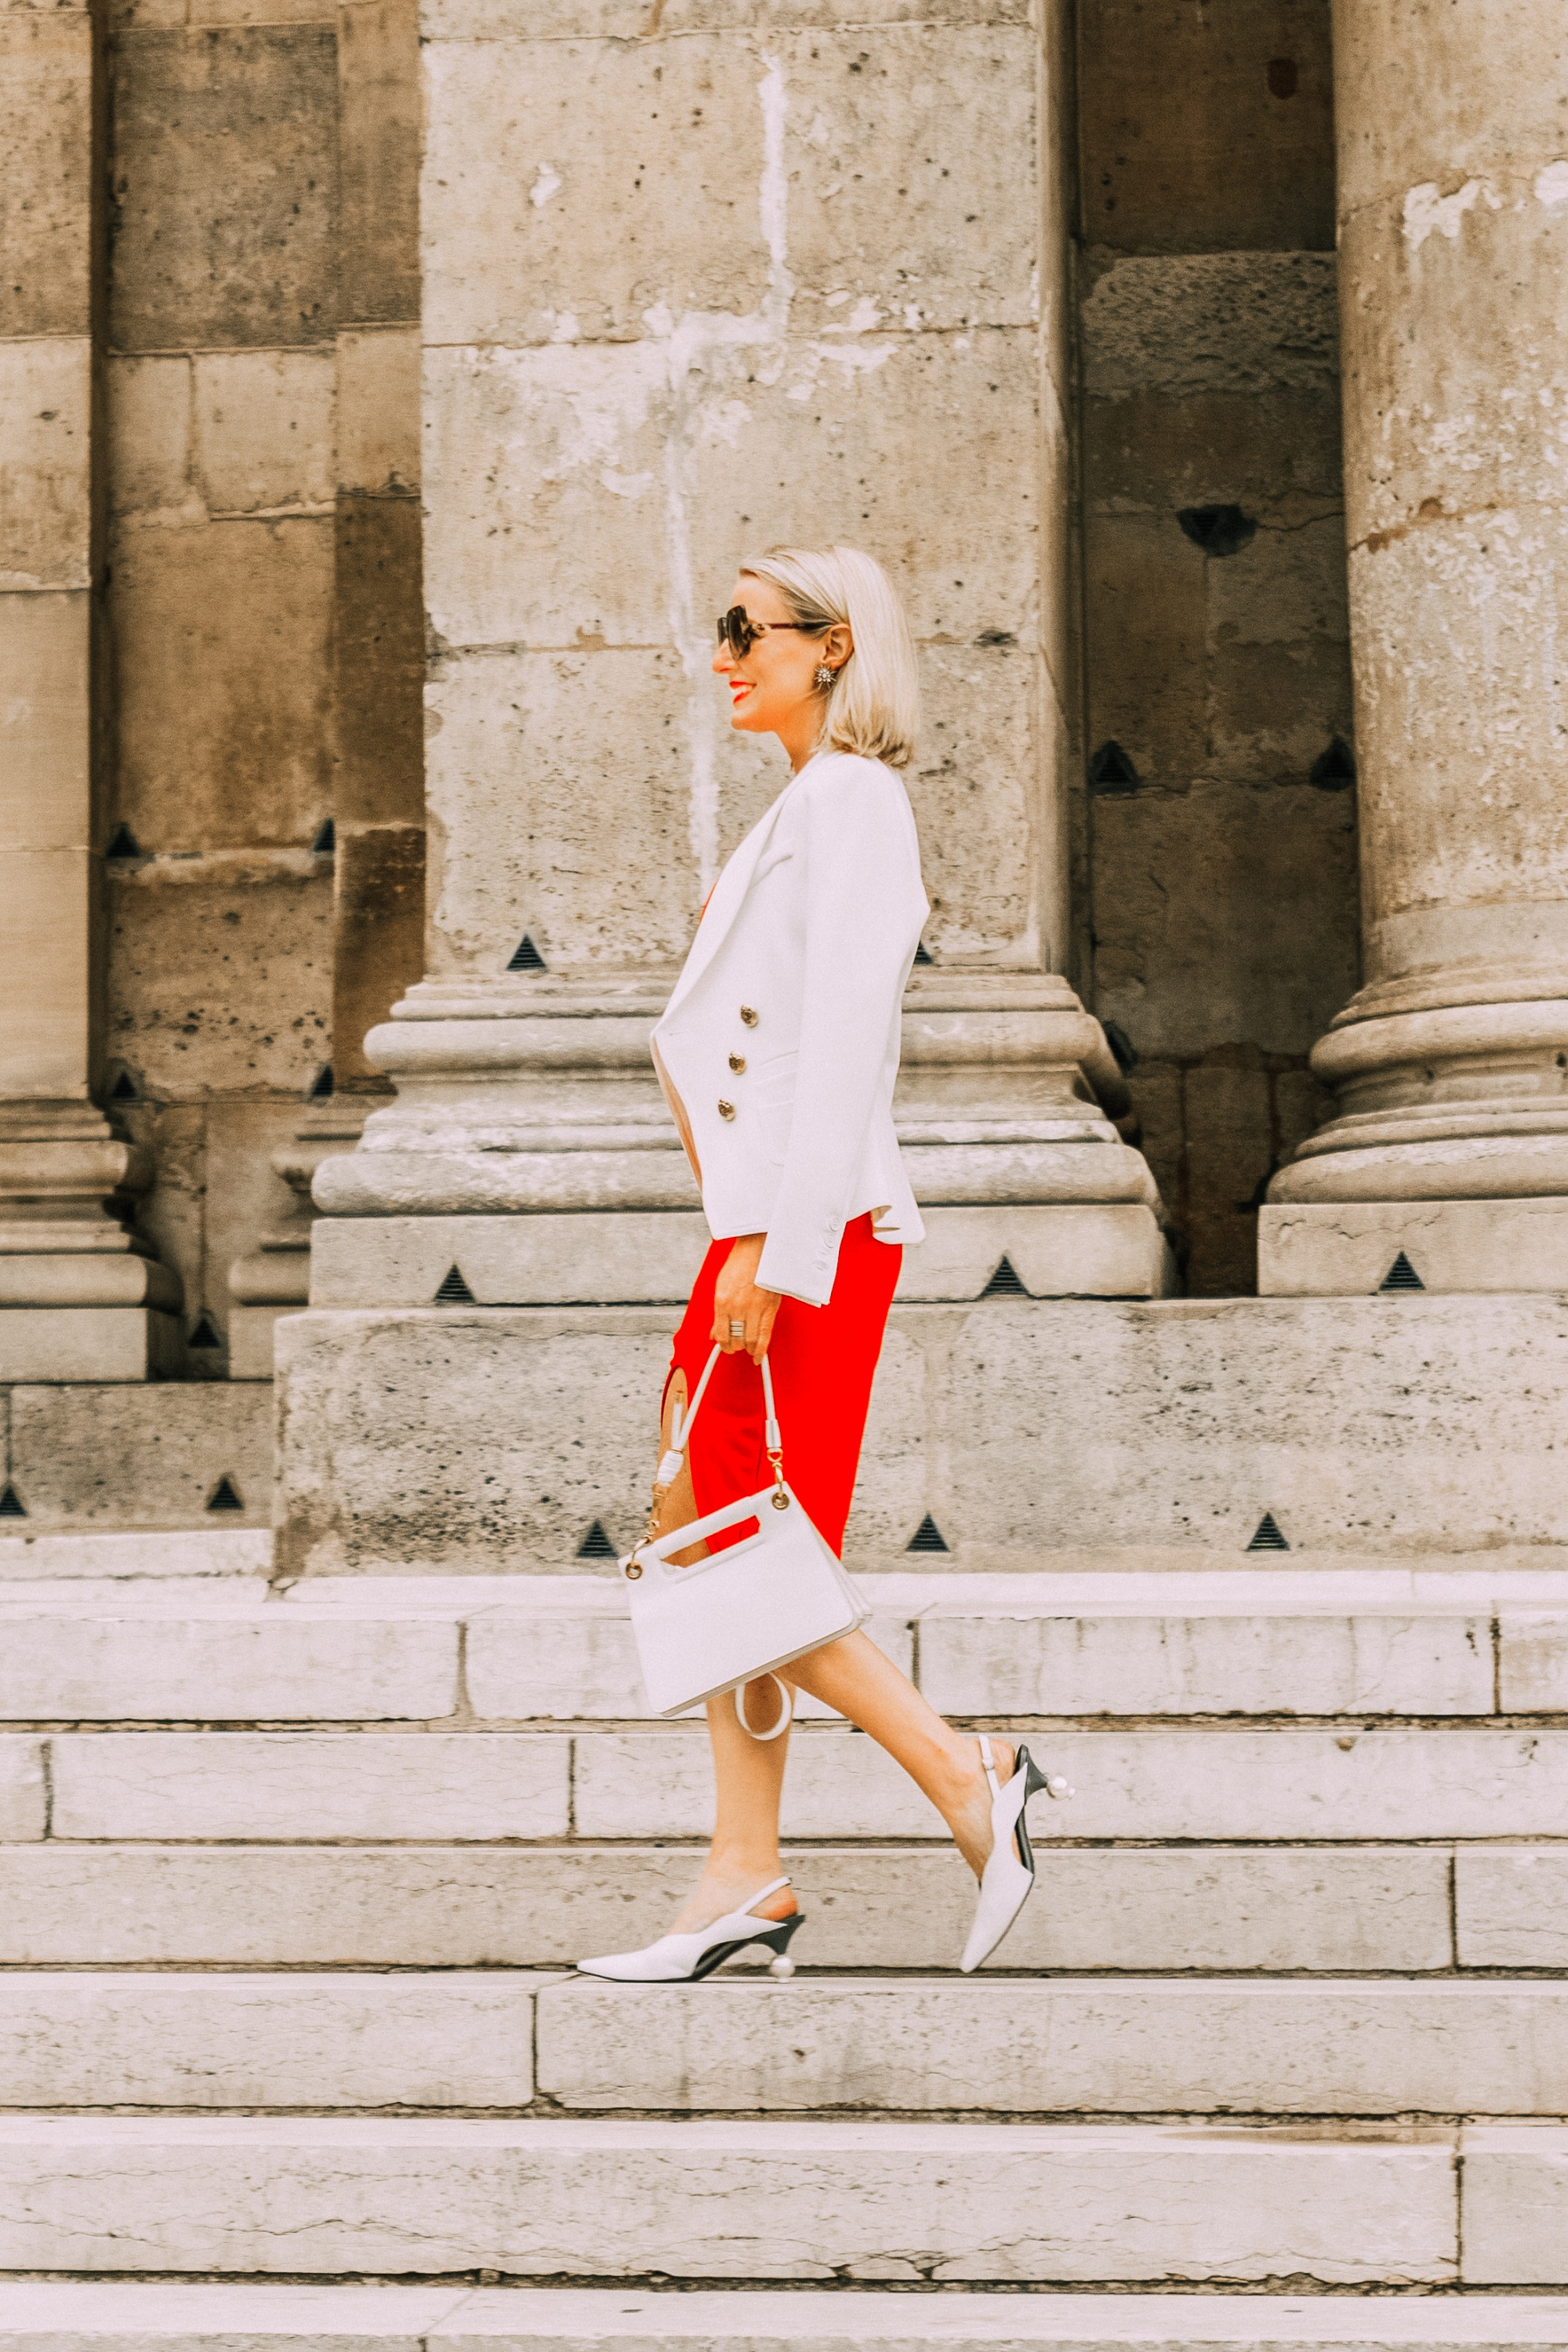 Date Night Dress, Fashion blogger over 40 Erin Busbee of BusbeeStyle.com wearing a red Bailey 44 dress with a white blazer, white Givenchy small whip bag, and white Smythe blazer in Paris, France